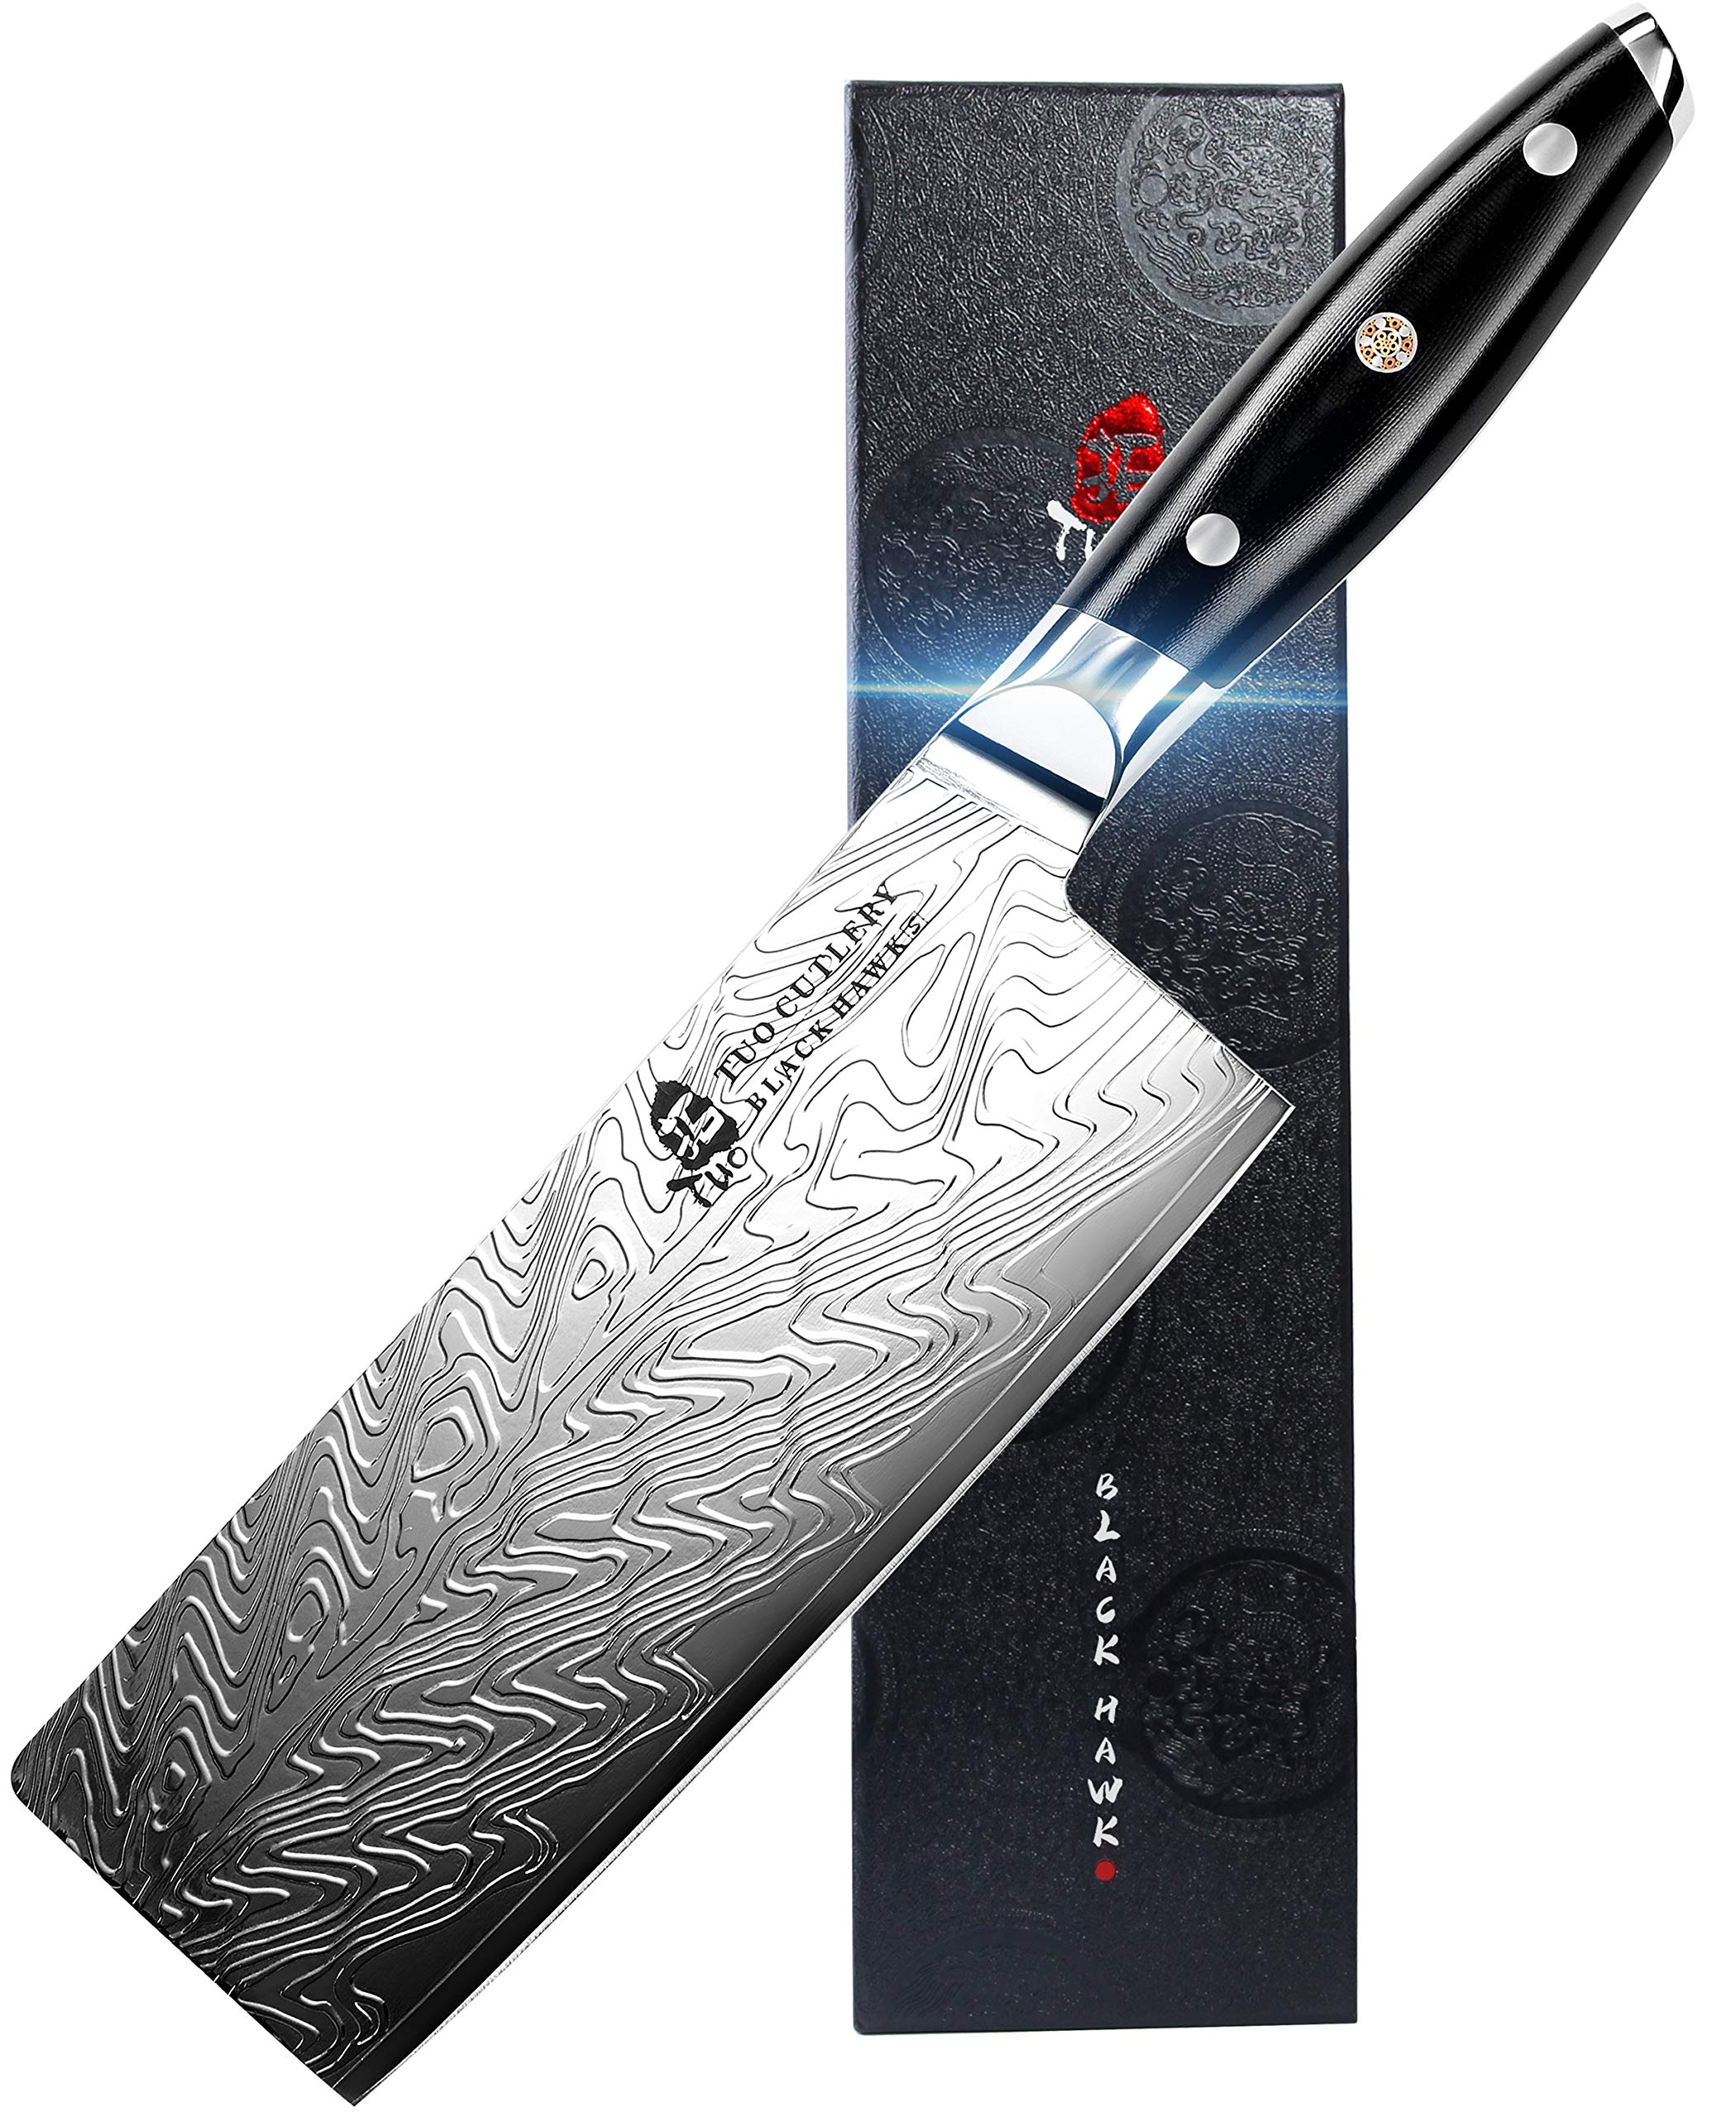 TUO Vegetable Meat Cleaver Knife - Chinese Chef's Knife 7-inch High Carbon Stainless Steel  - Kitchen Knife with G10 Full Tang handle - Black Hawk-S Including Gift Box by TUO